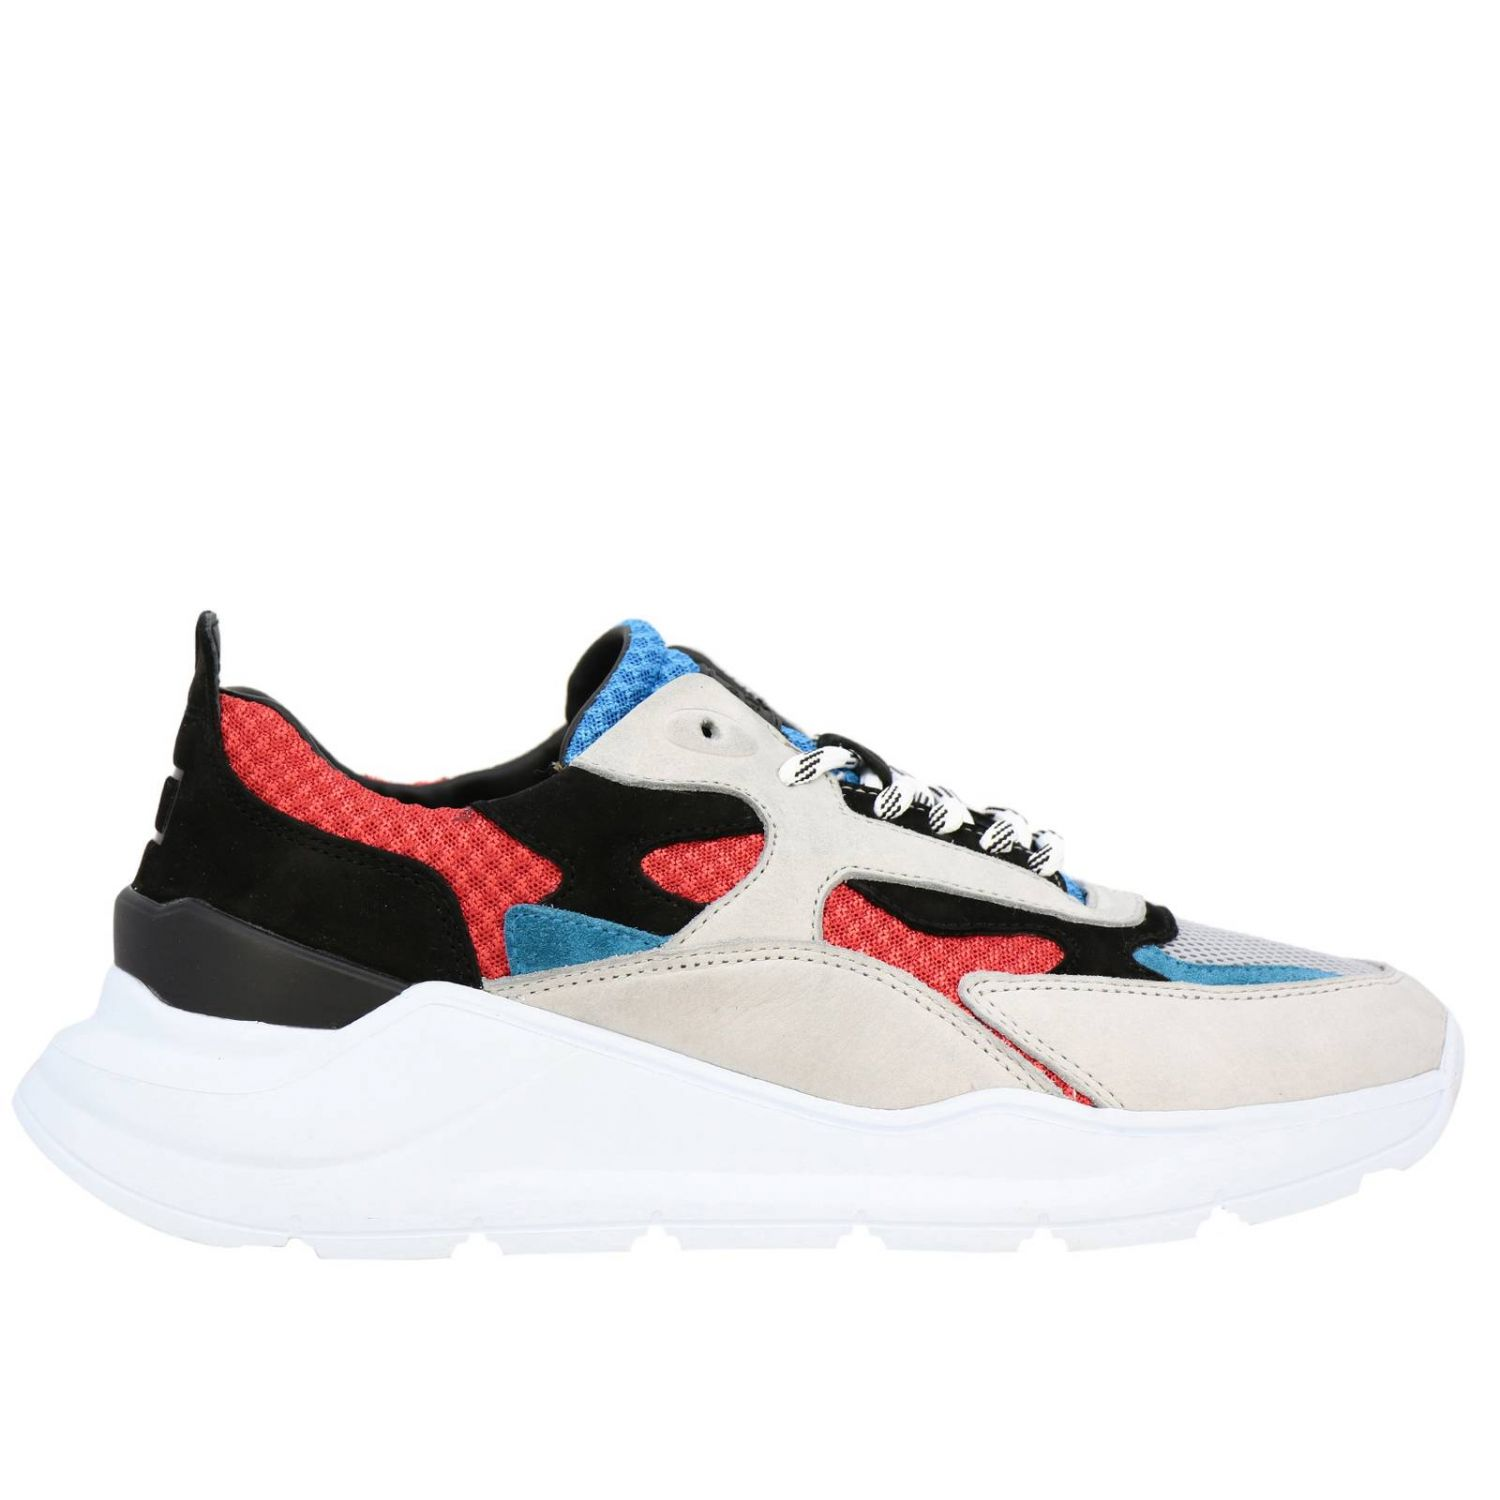 Chaussures homme D.a.t.e. rouge 1